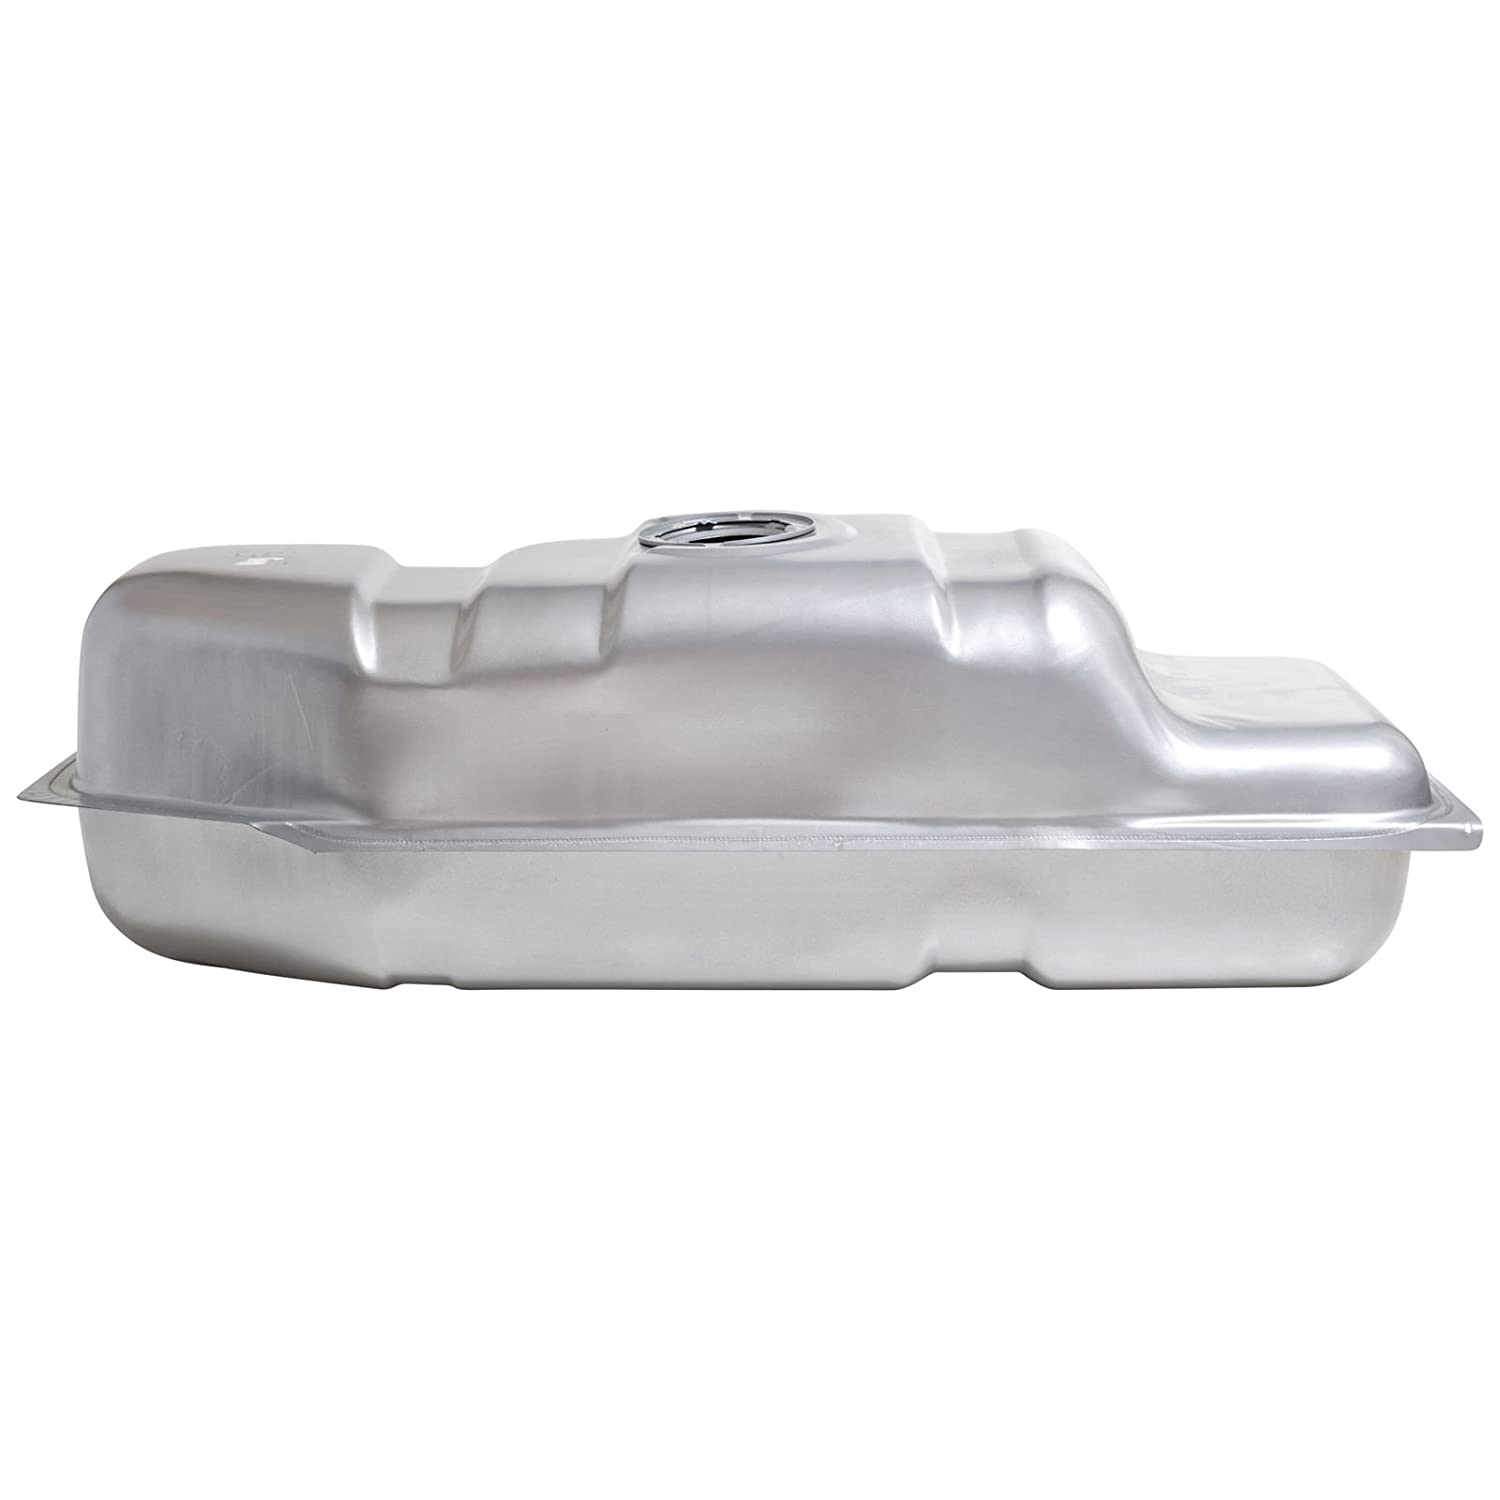 Fuel Tank For Gmc S15 Sonoma 1985 1995 Chevrolet S10 Filter Location Fits 15961070 576 323 Automotive